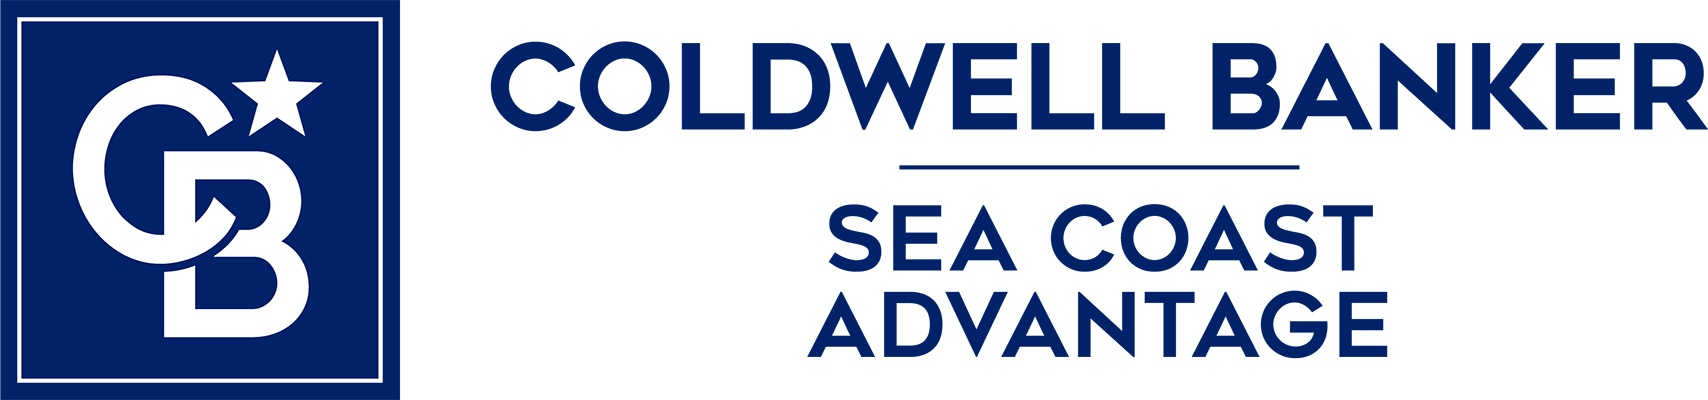 Brad Hunter - Coldwell Banker Sea Coast Advantage Realty Logo